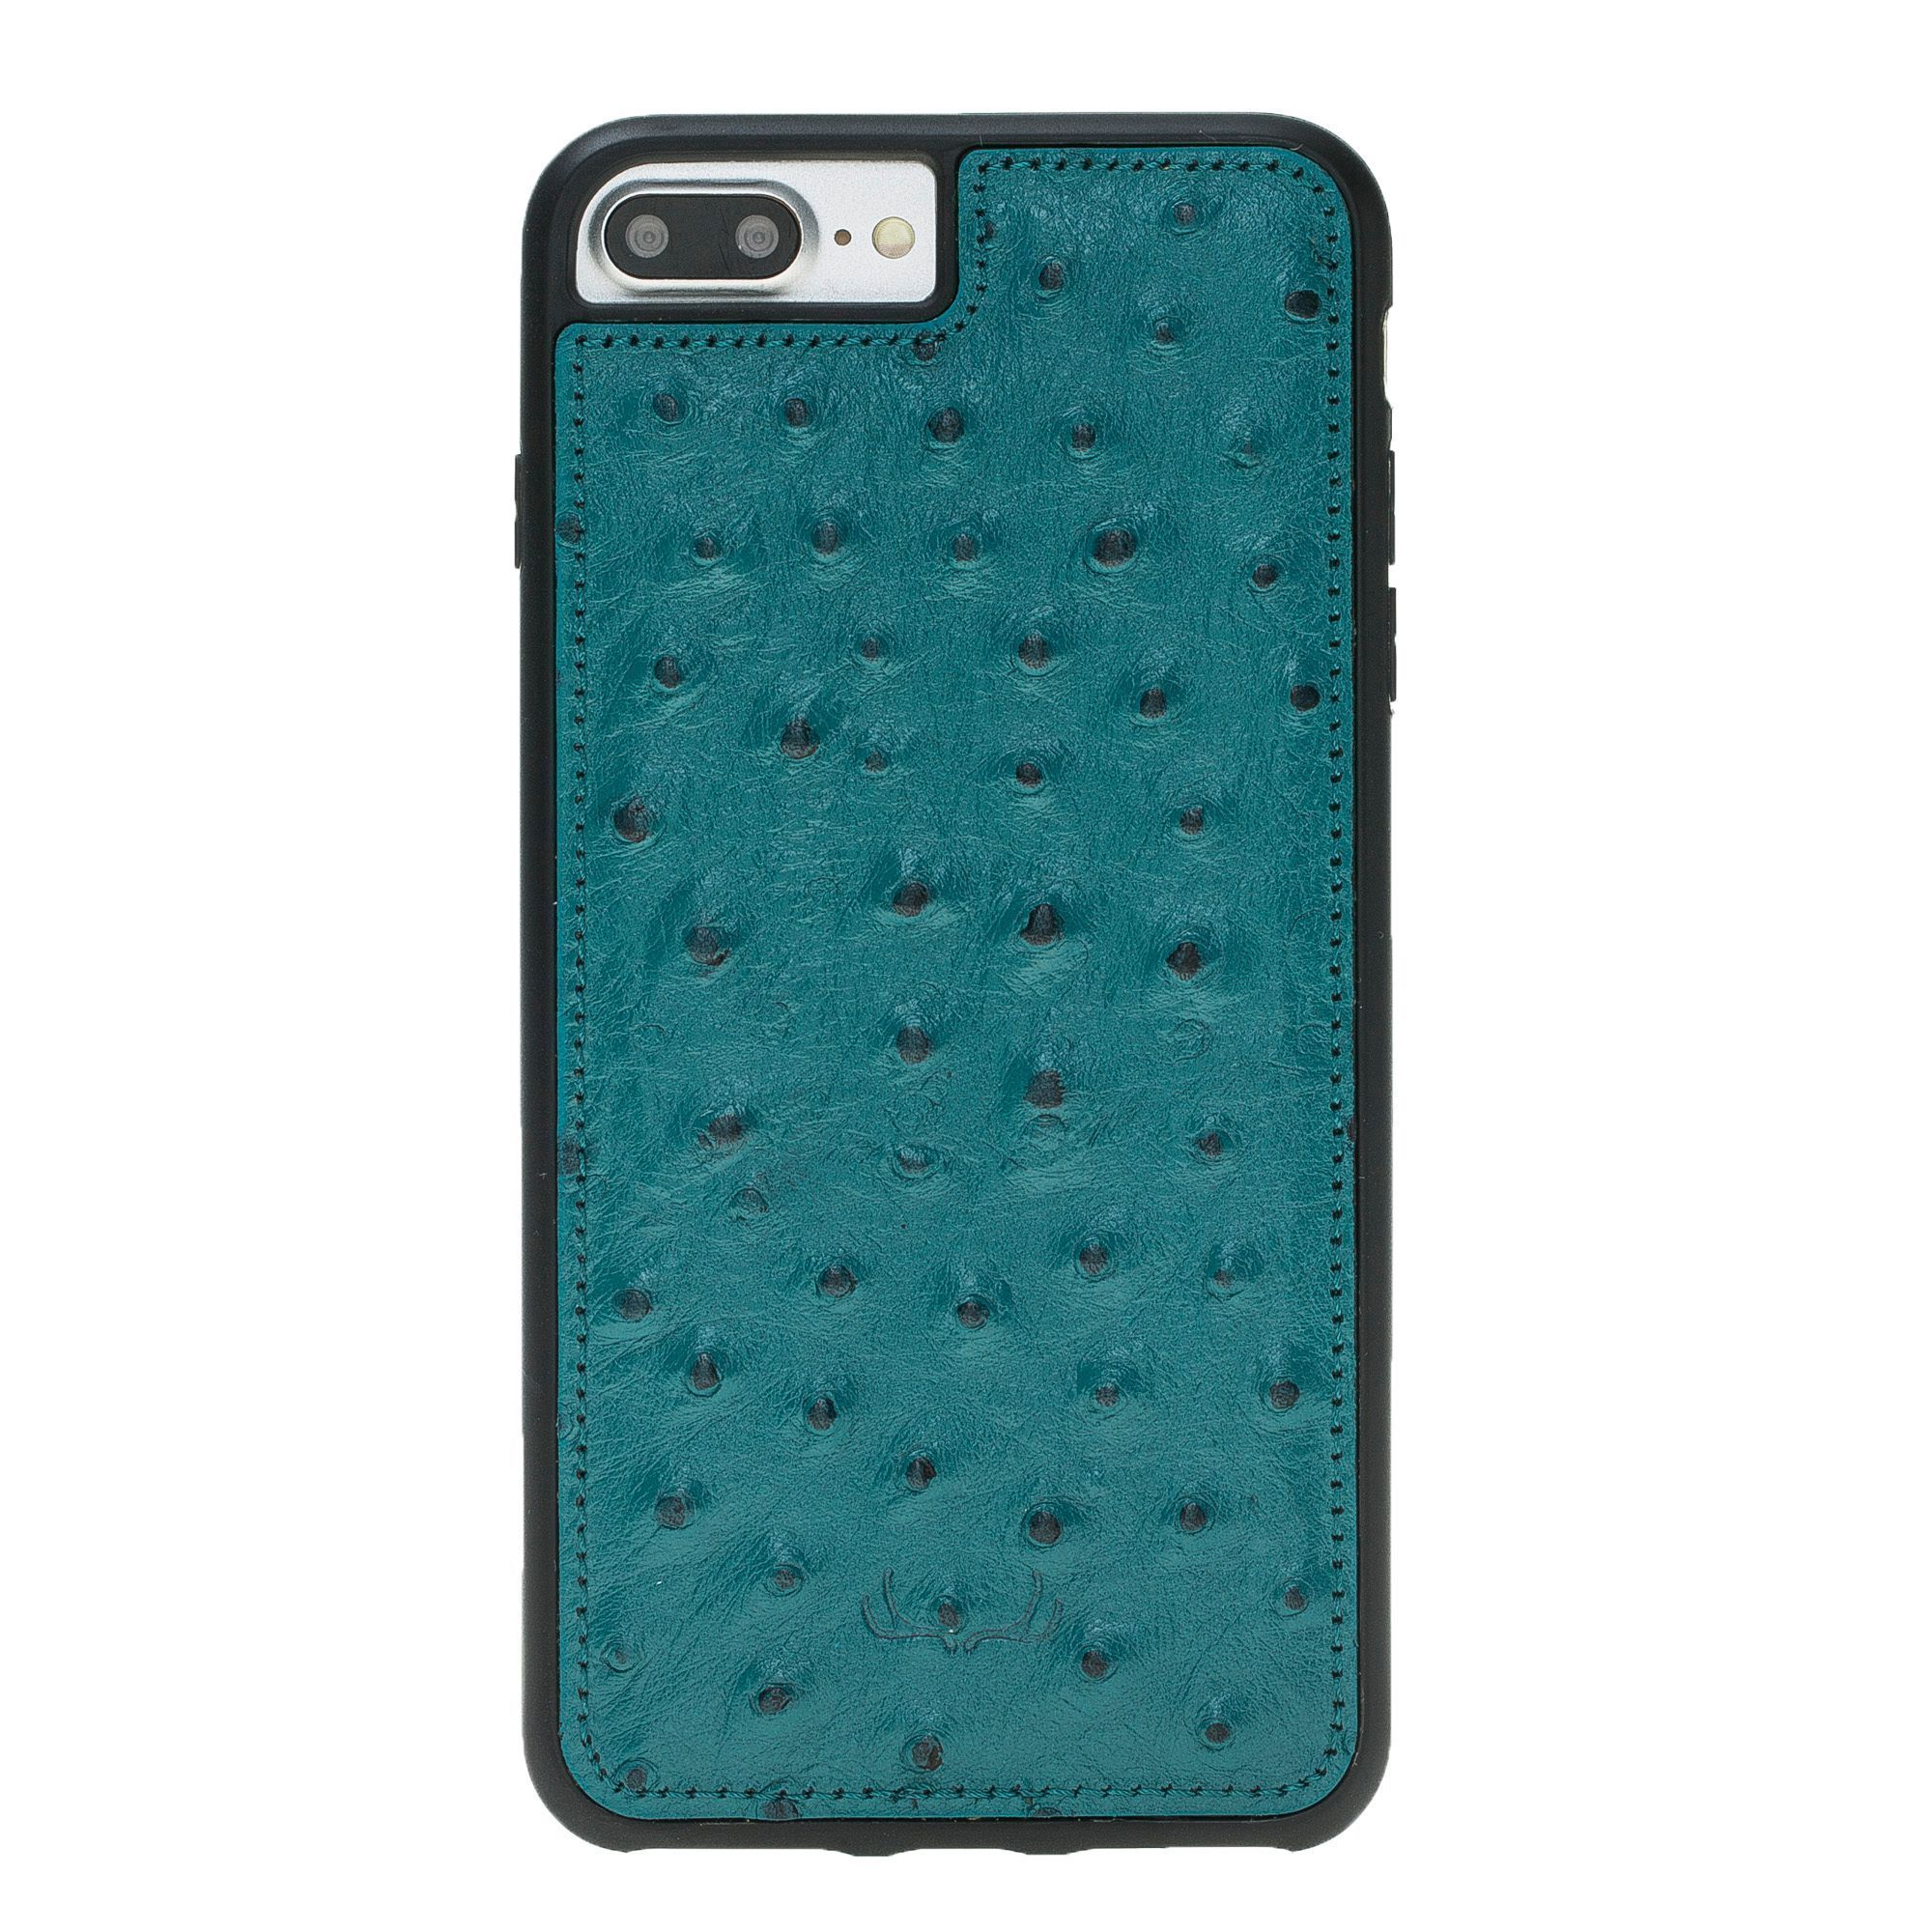 BNT Flex Cover Leather Cases - Ostrich - iPhone 7 Plus/ 8 Plus - Torguise